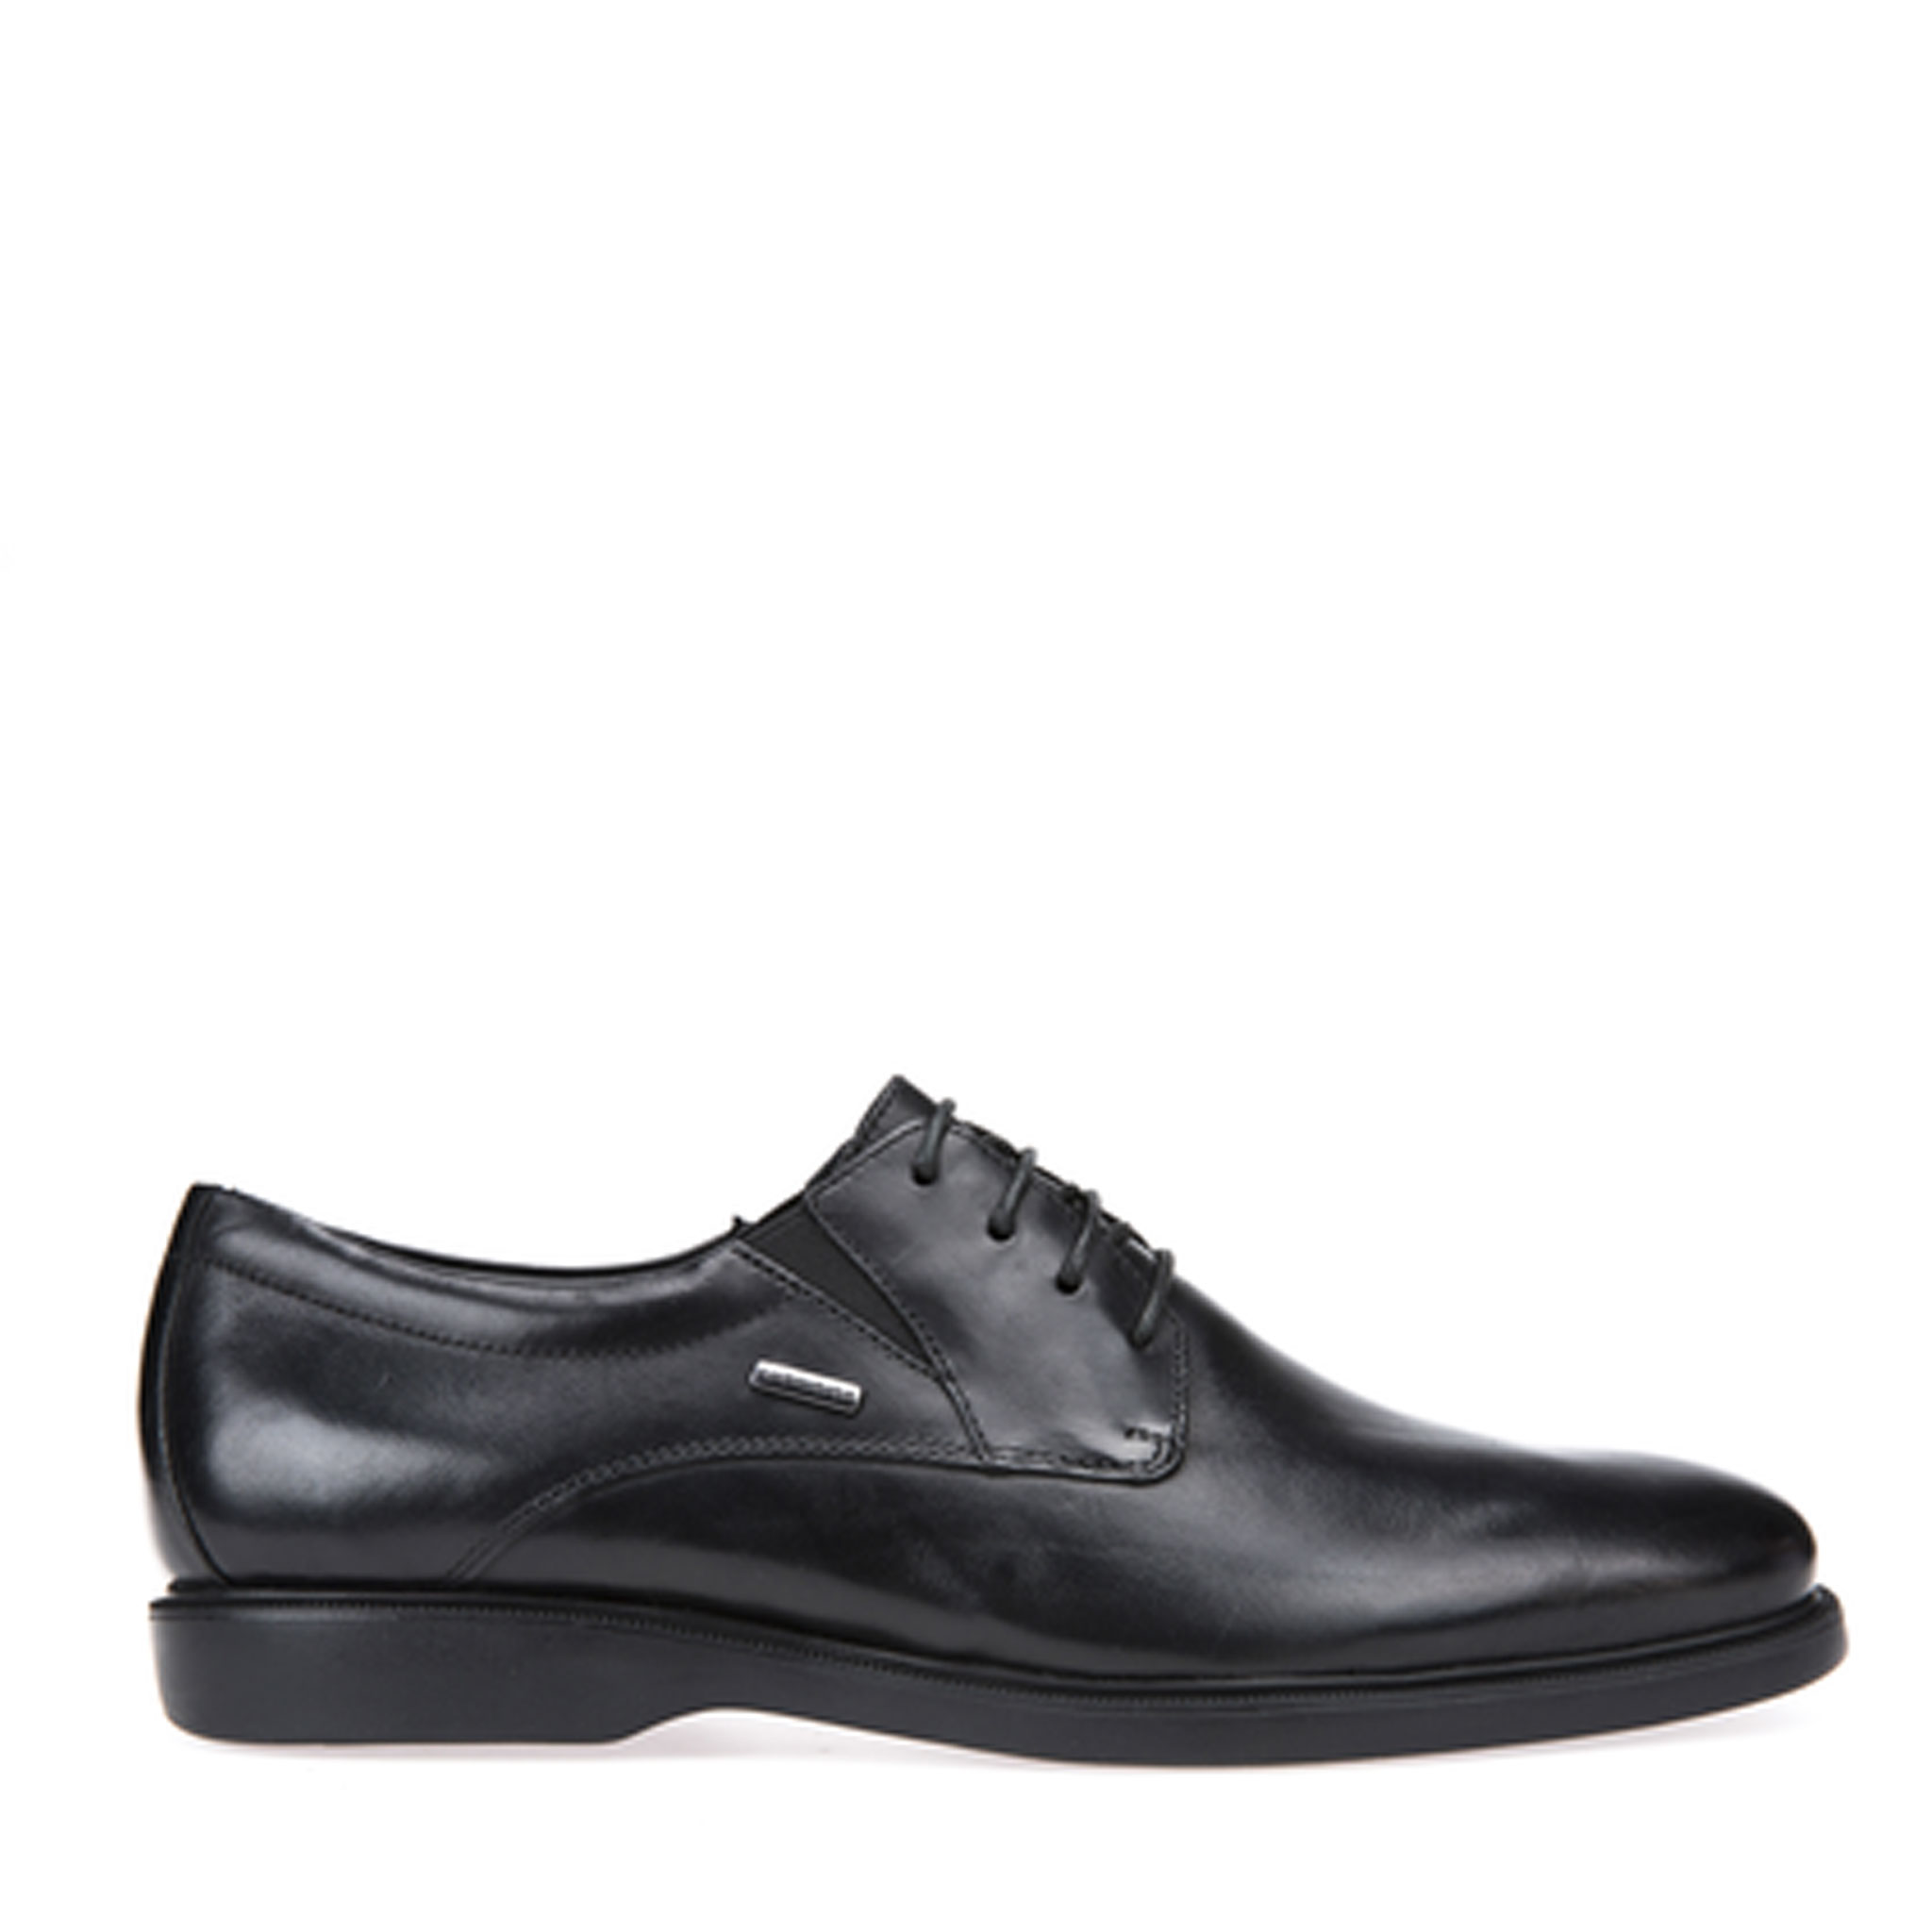 Geox Men's Brayden Oxford in Black - image 4 de 4